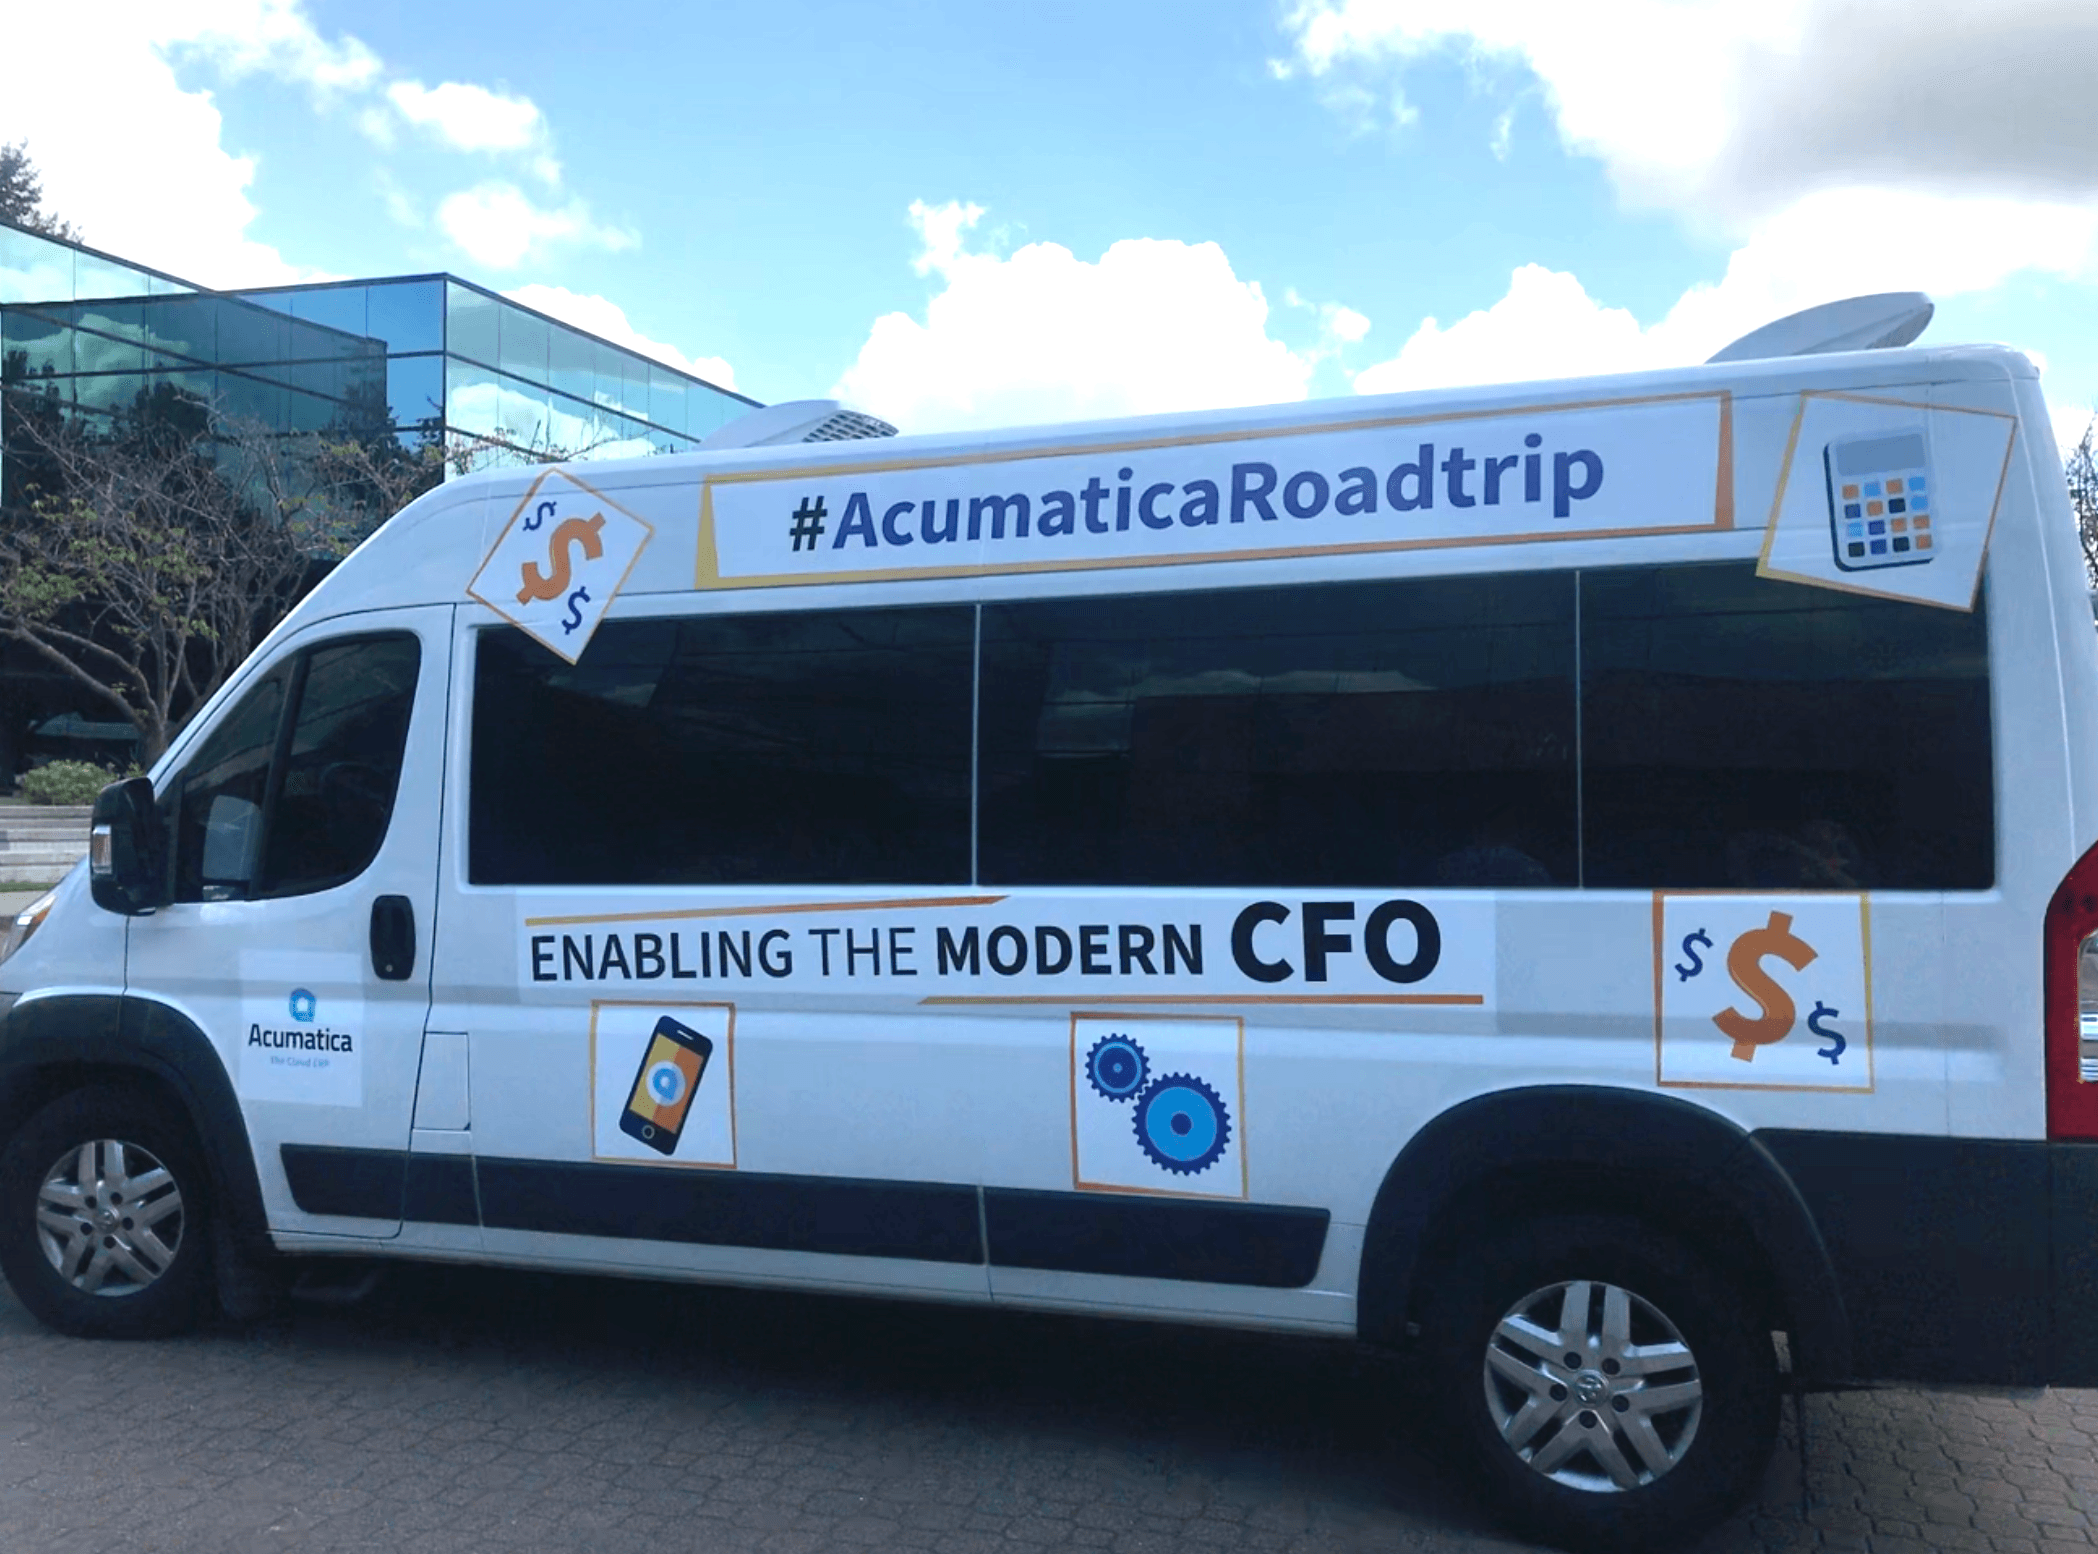 Acumatica Roadtrip Van